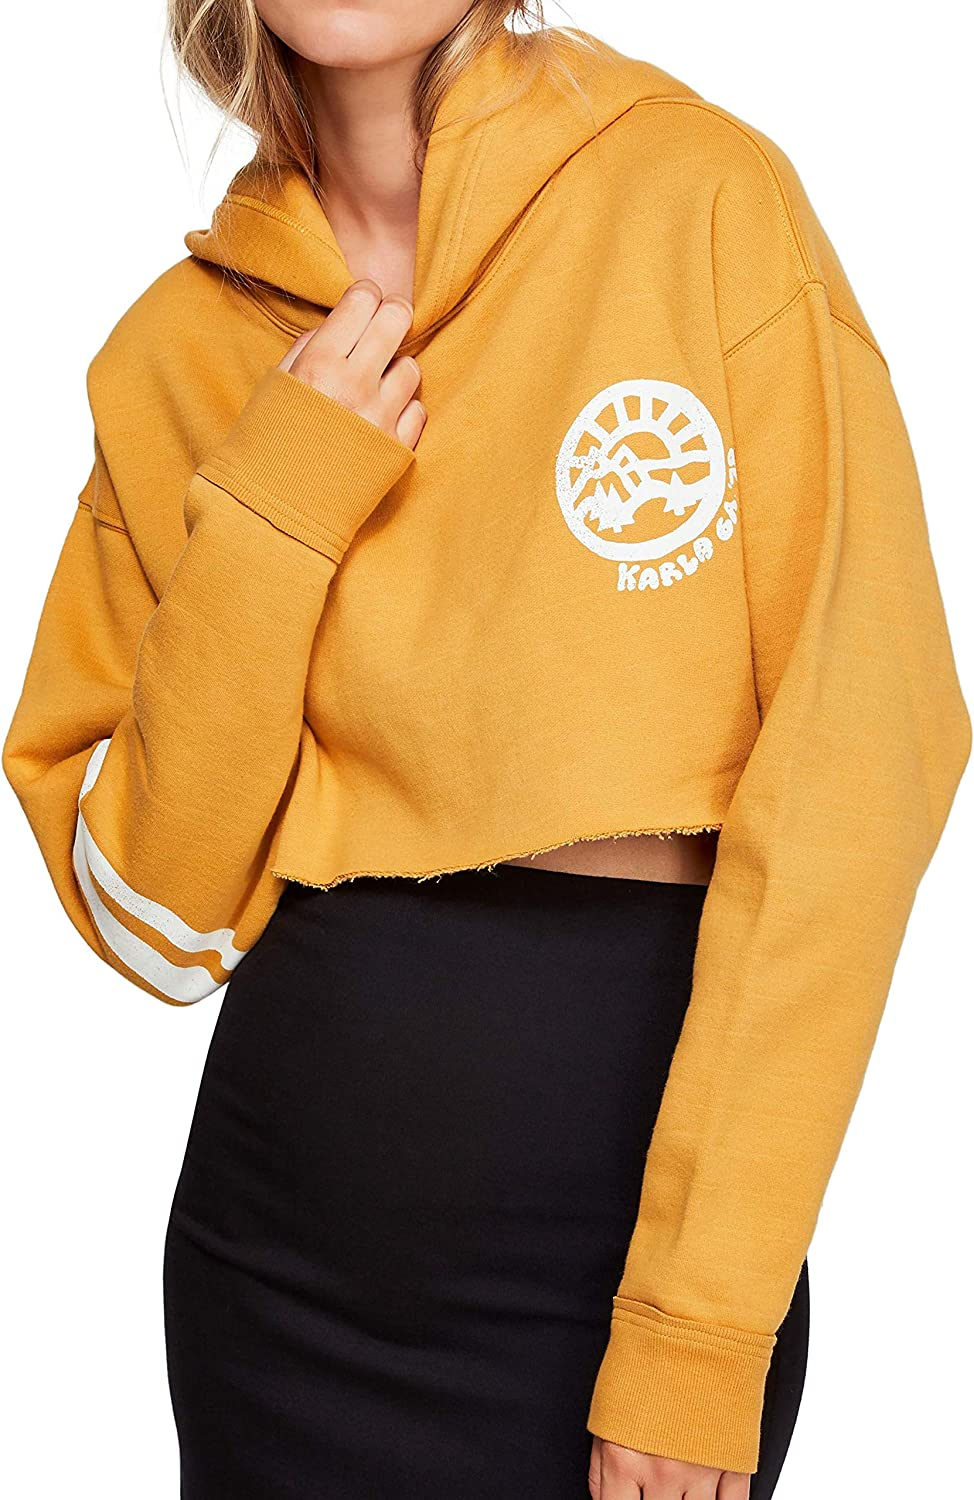 Free People Baldwin Cropped Graphic Hoodie, Small, Light Yellow